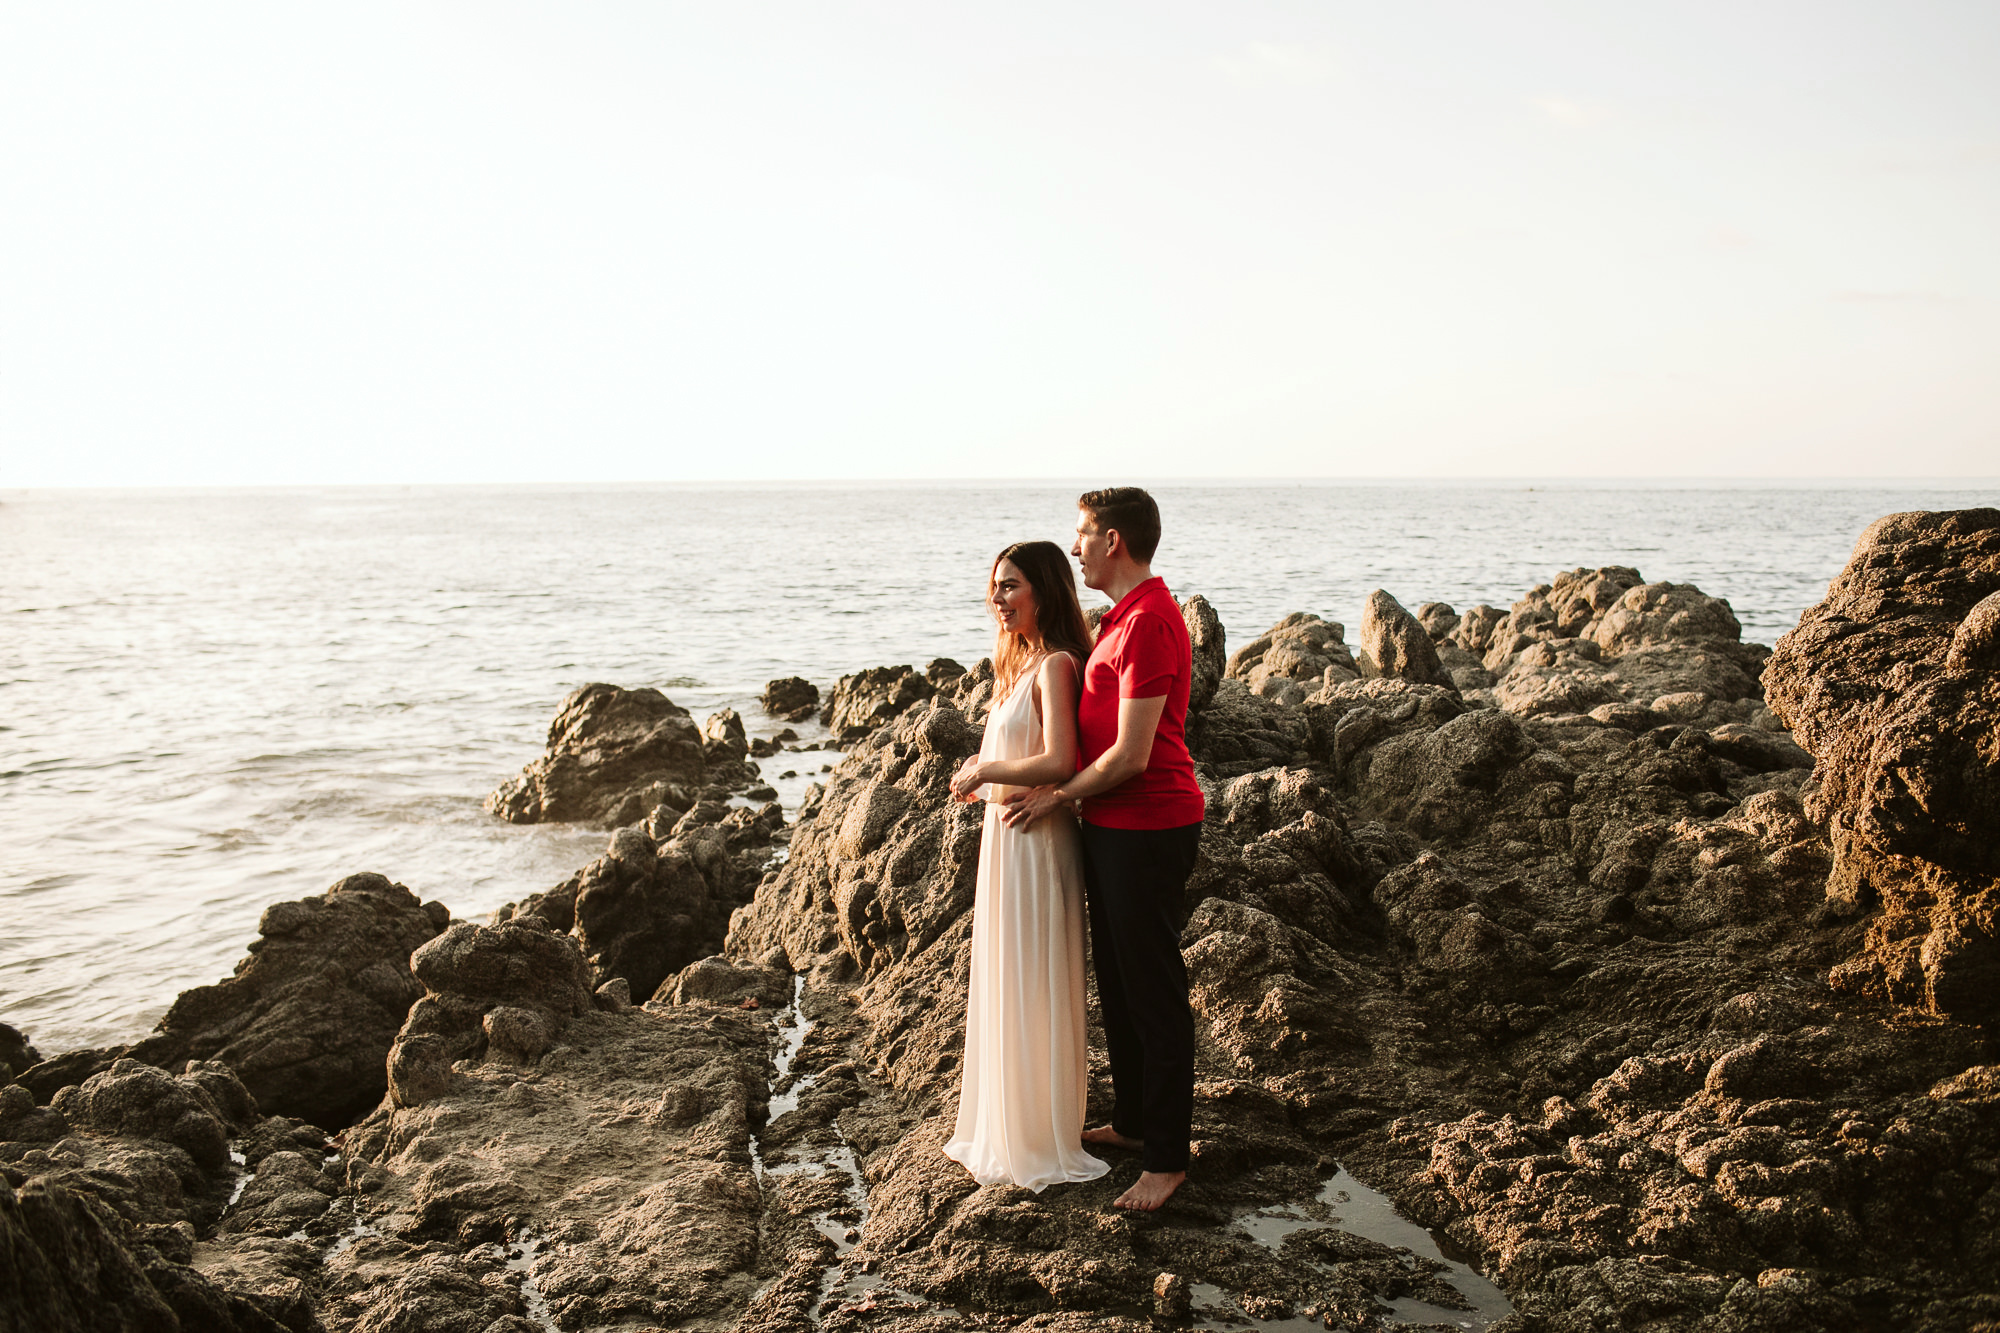 Sayulita-wedding-photographer-31.jpg